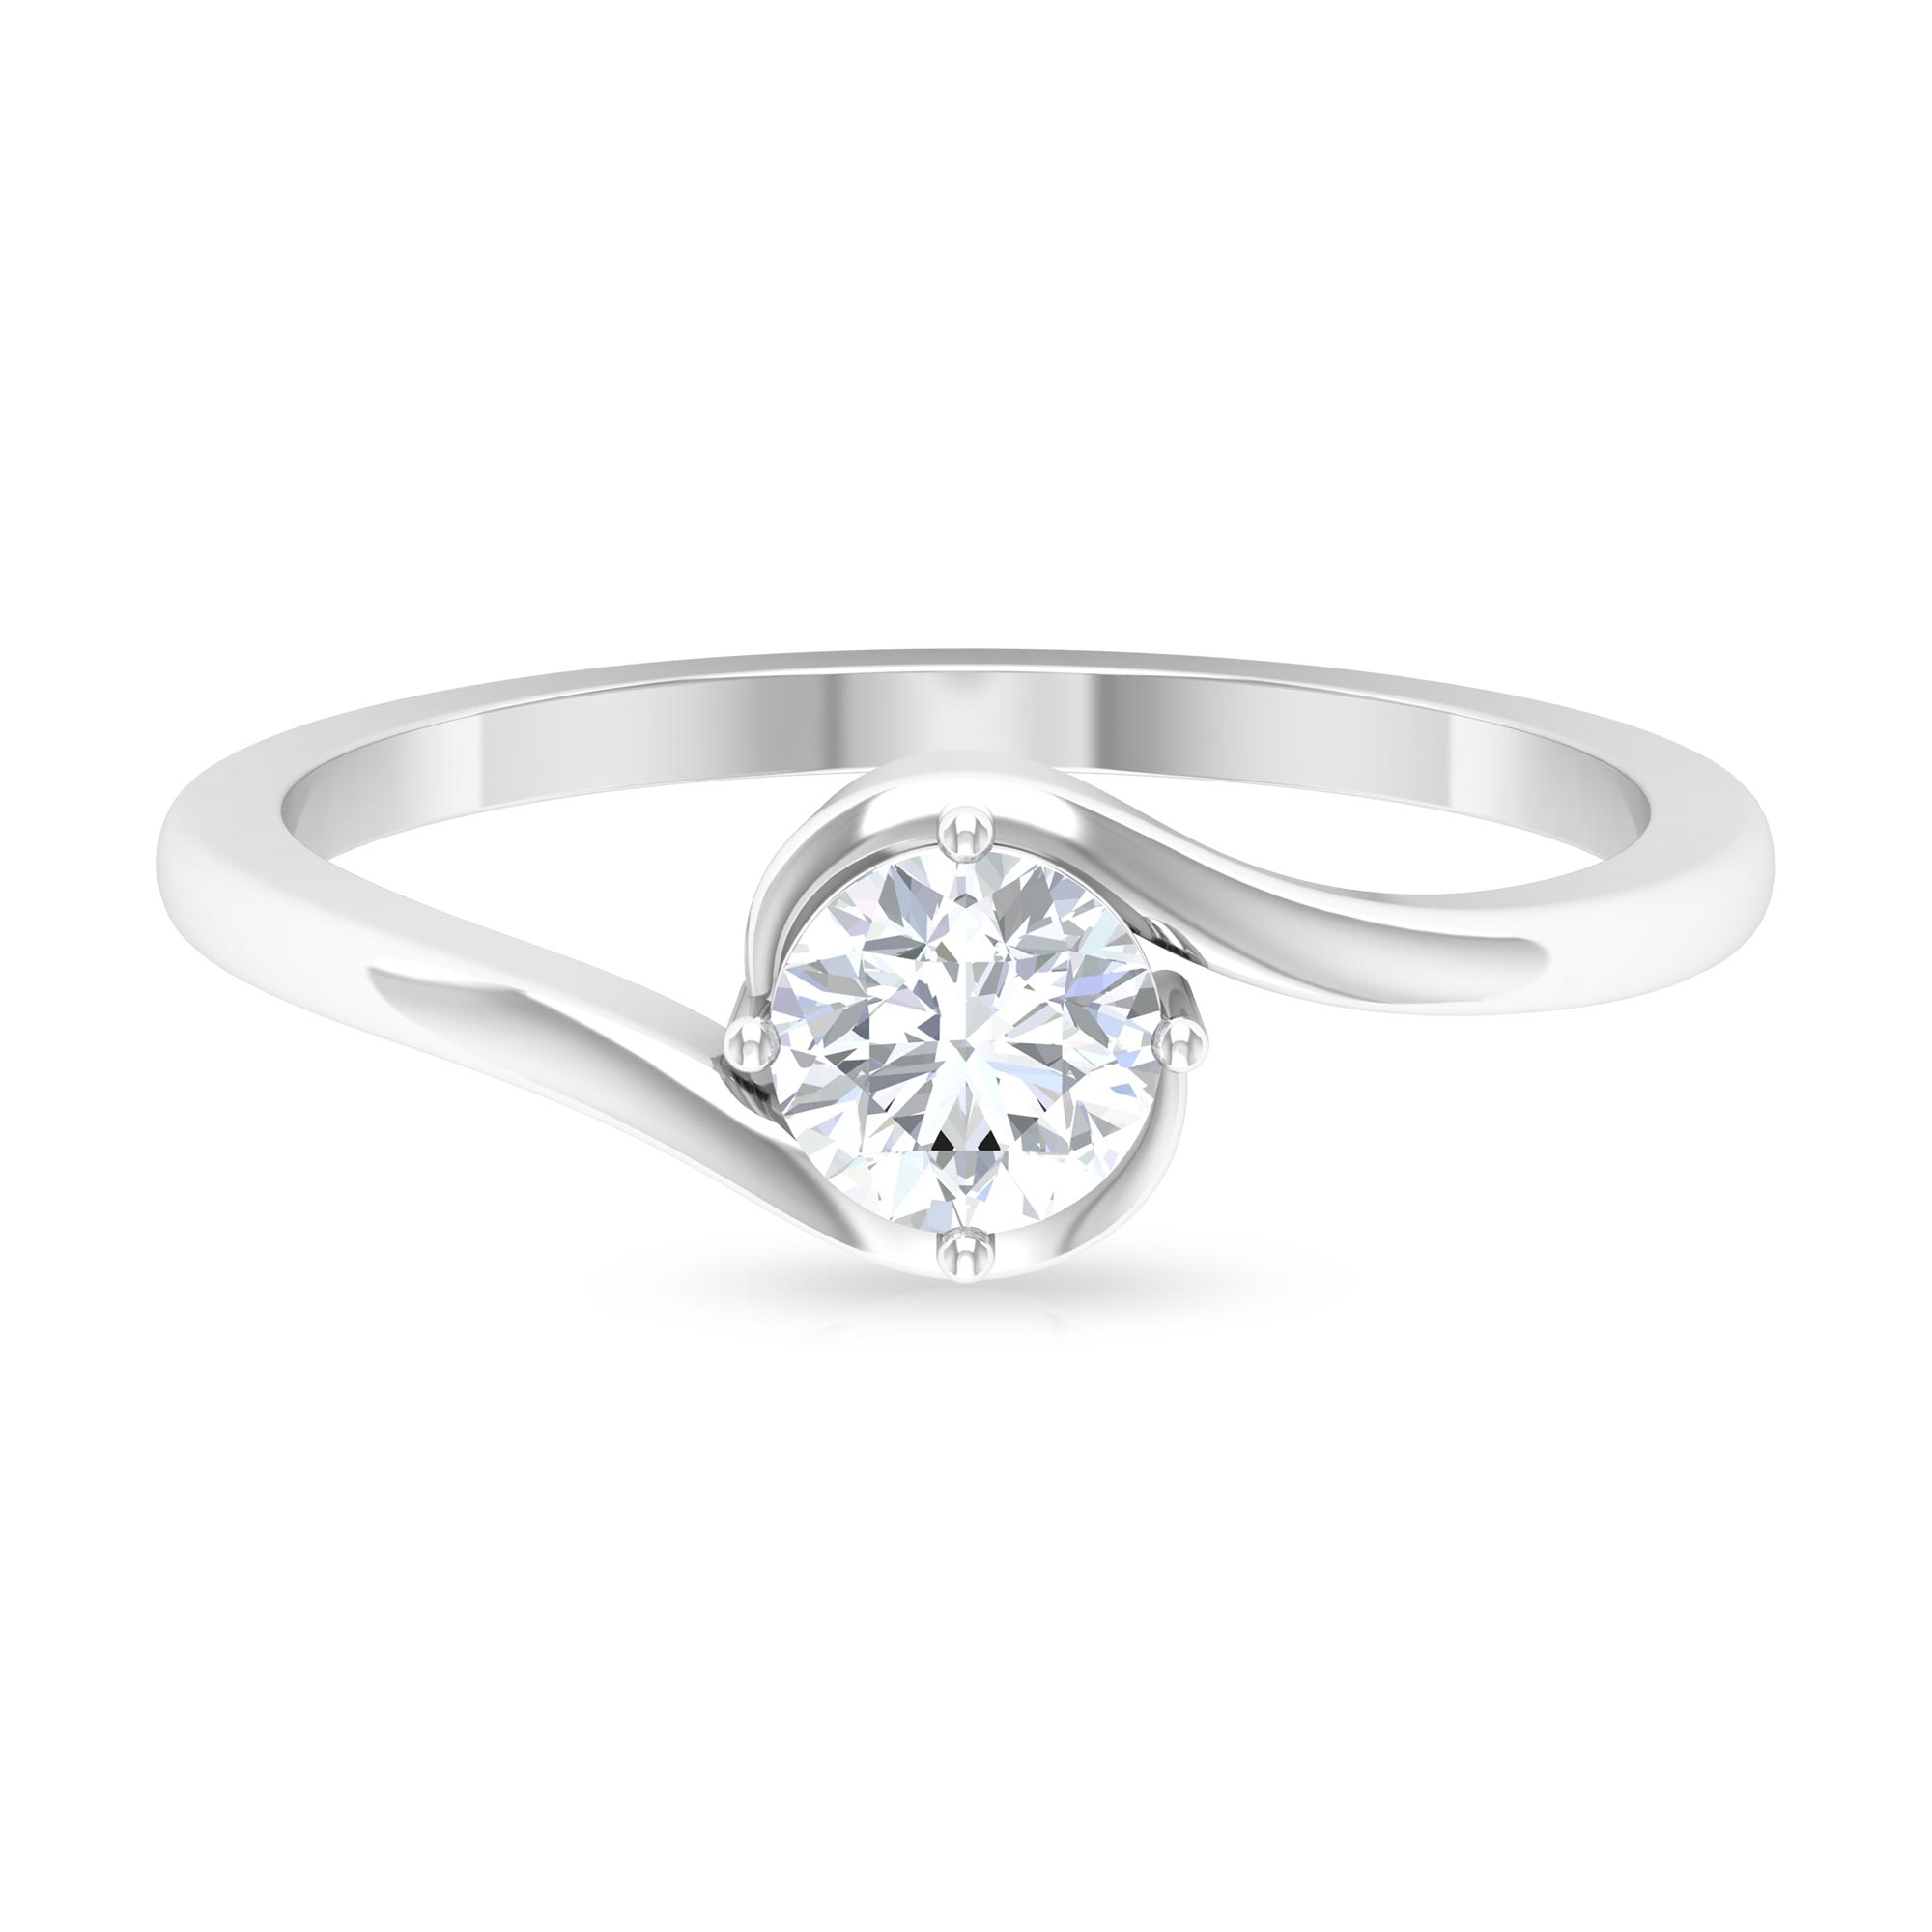 1/2 CT Solitaire Diamond Bypass Ring in Diagonal 4 Prong Setting